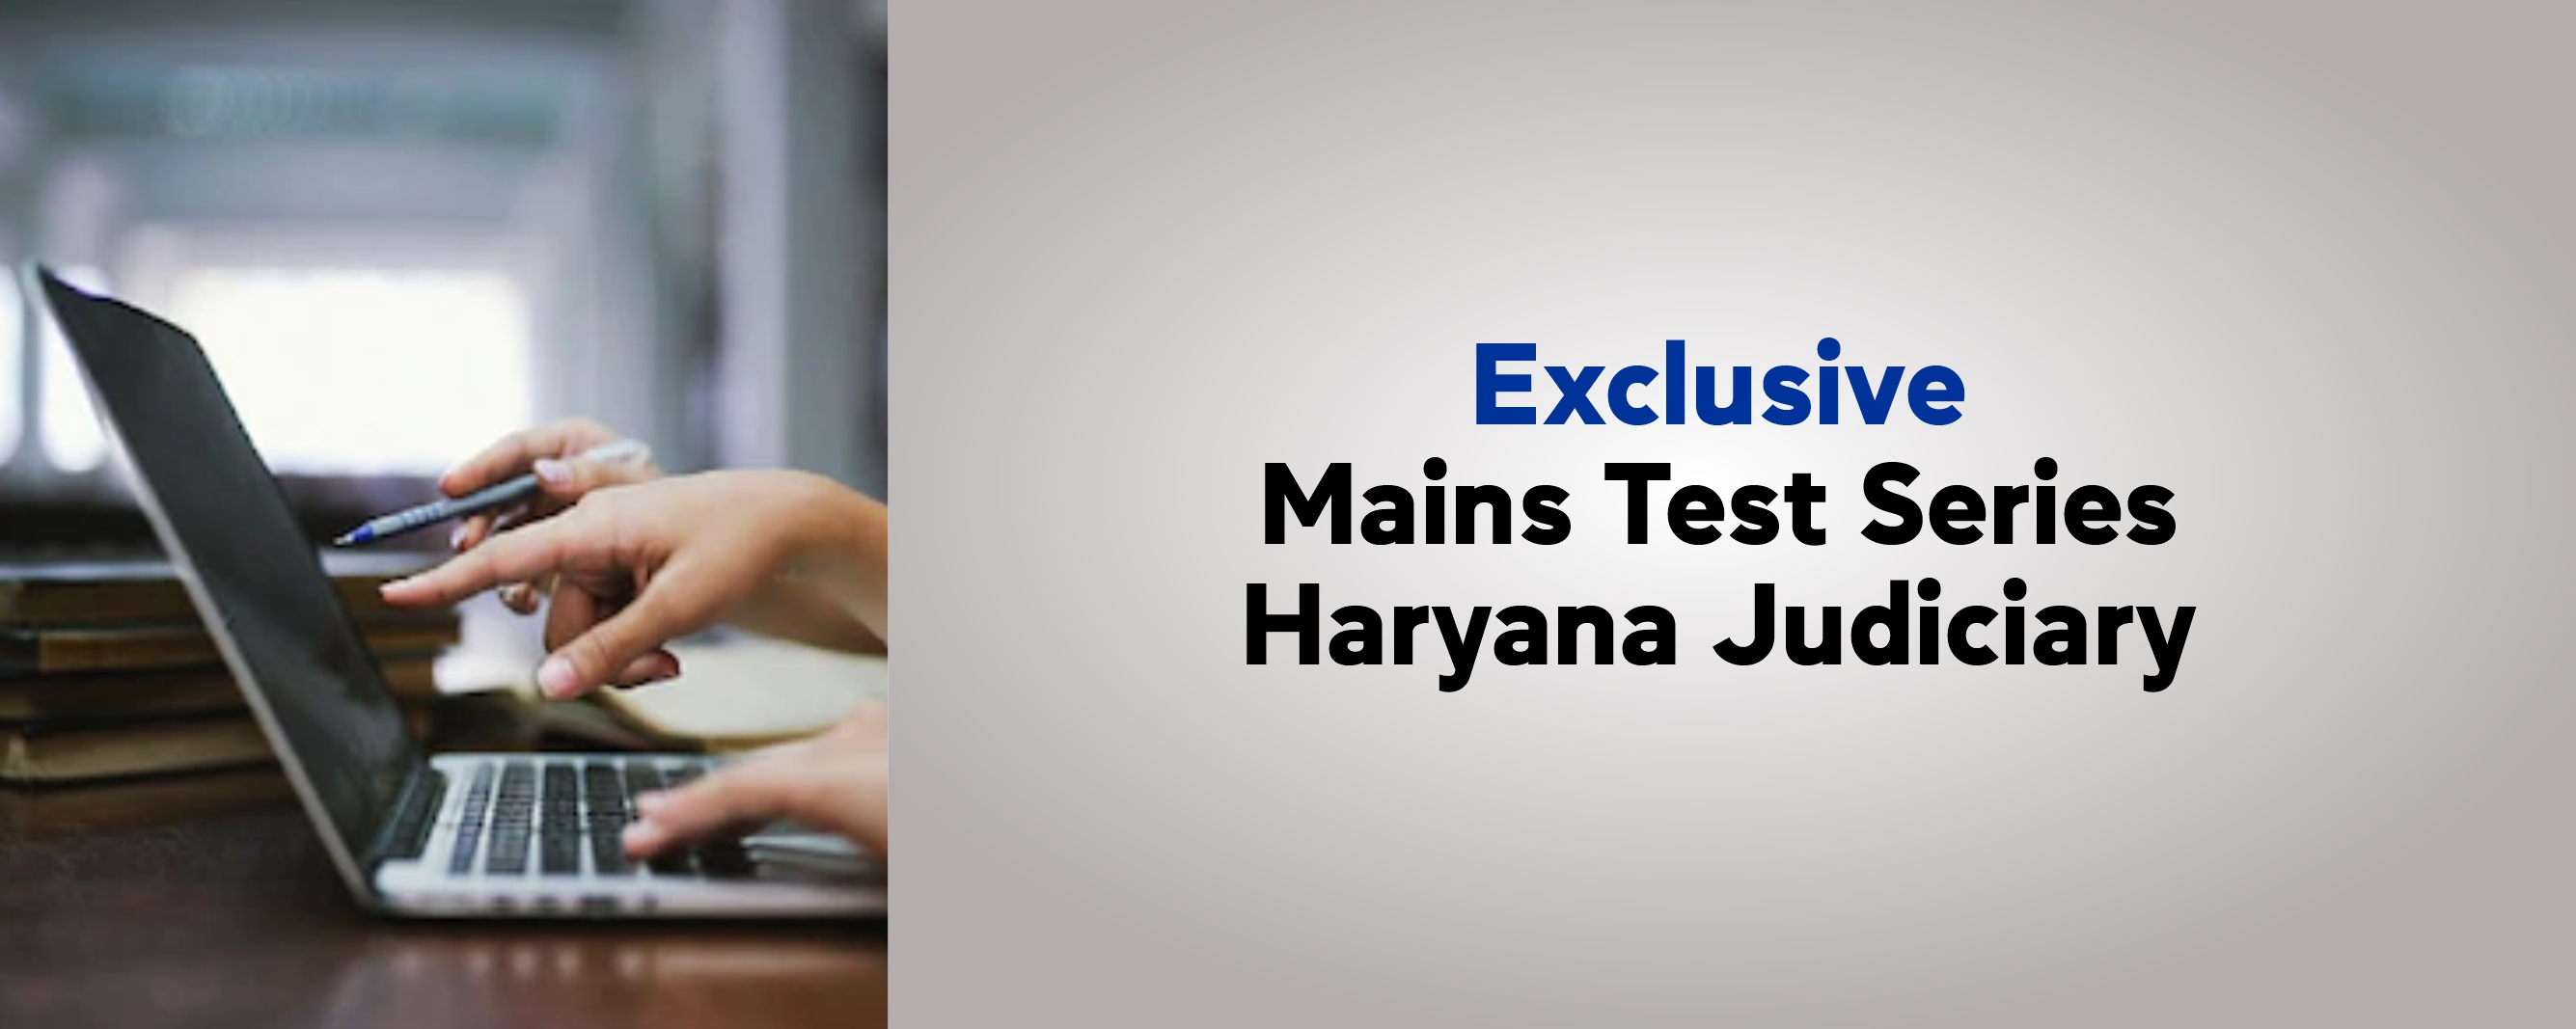 EXCLUSIVE  MAINS TEST SERIES HARYANA JUDICIARY